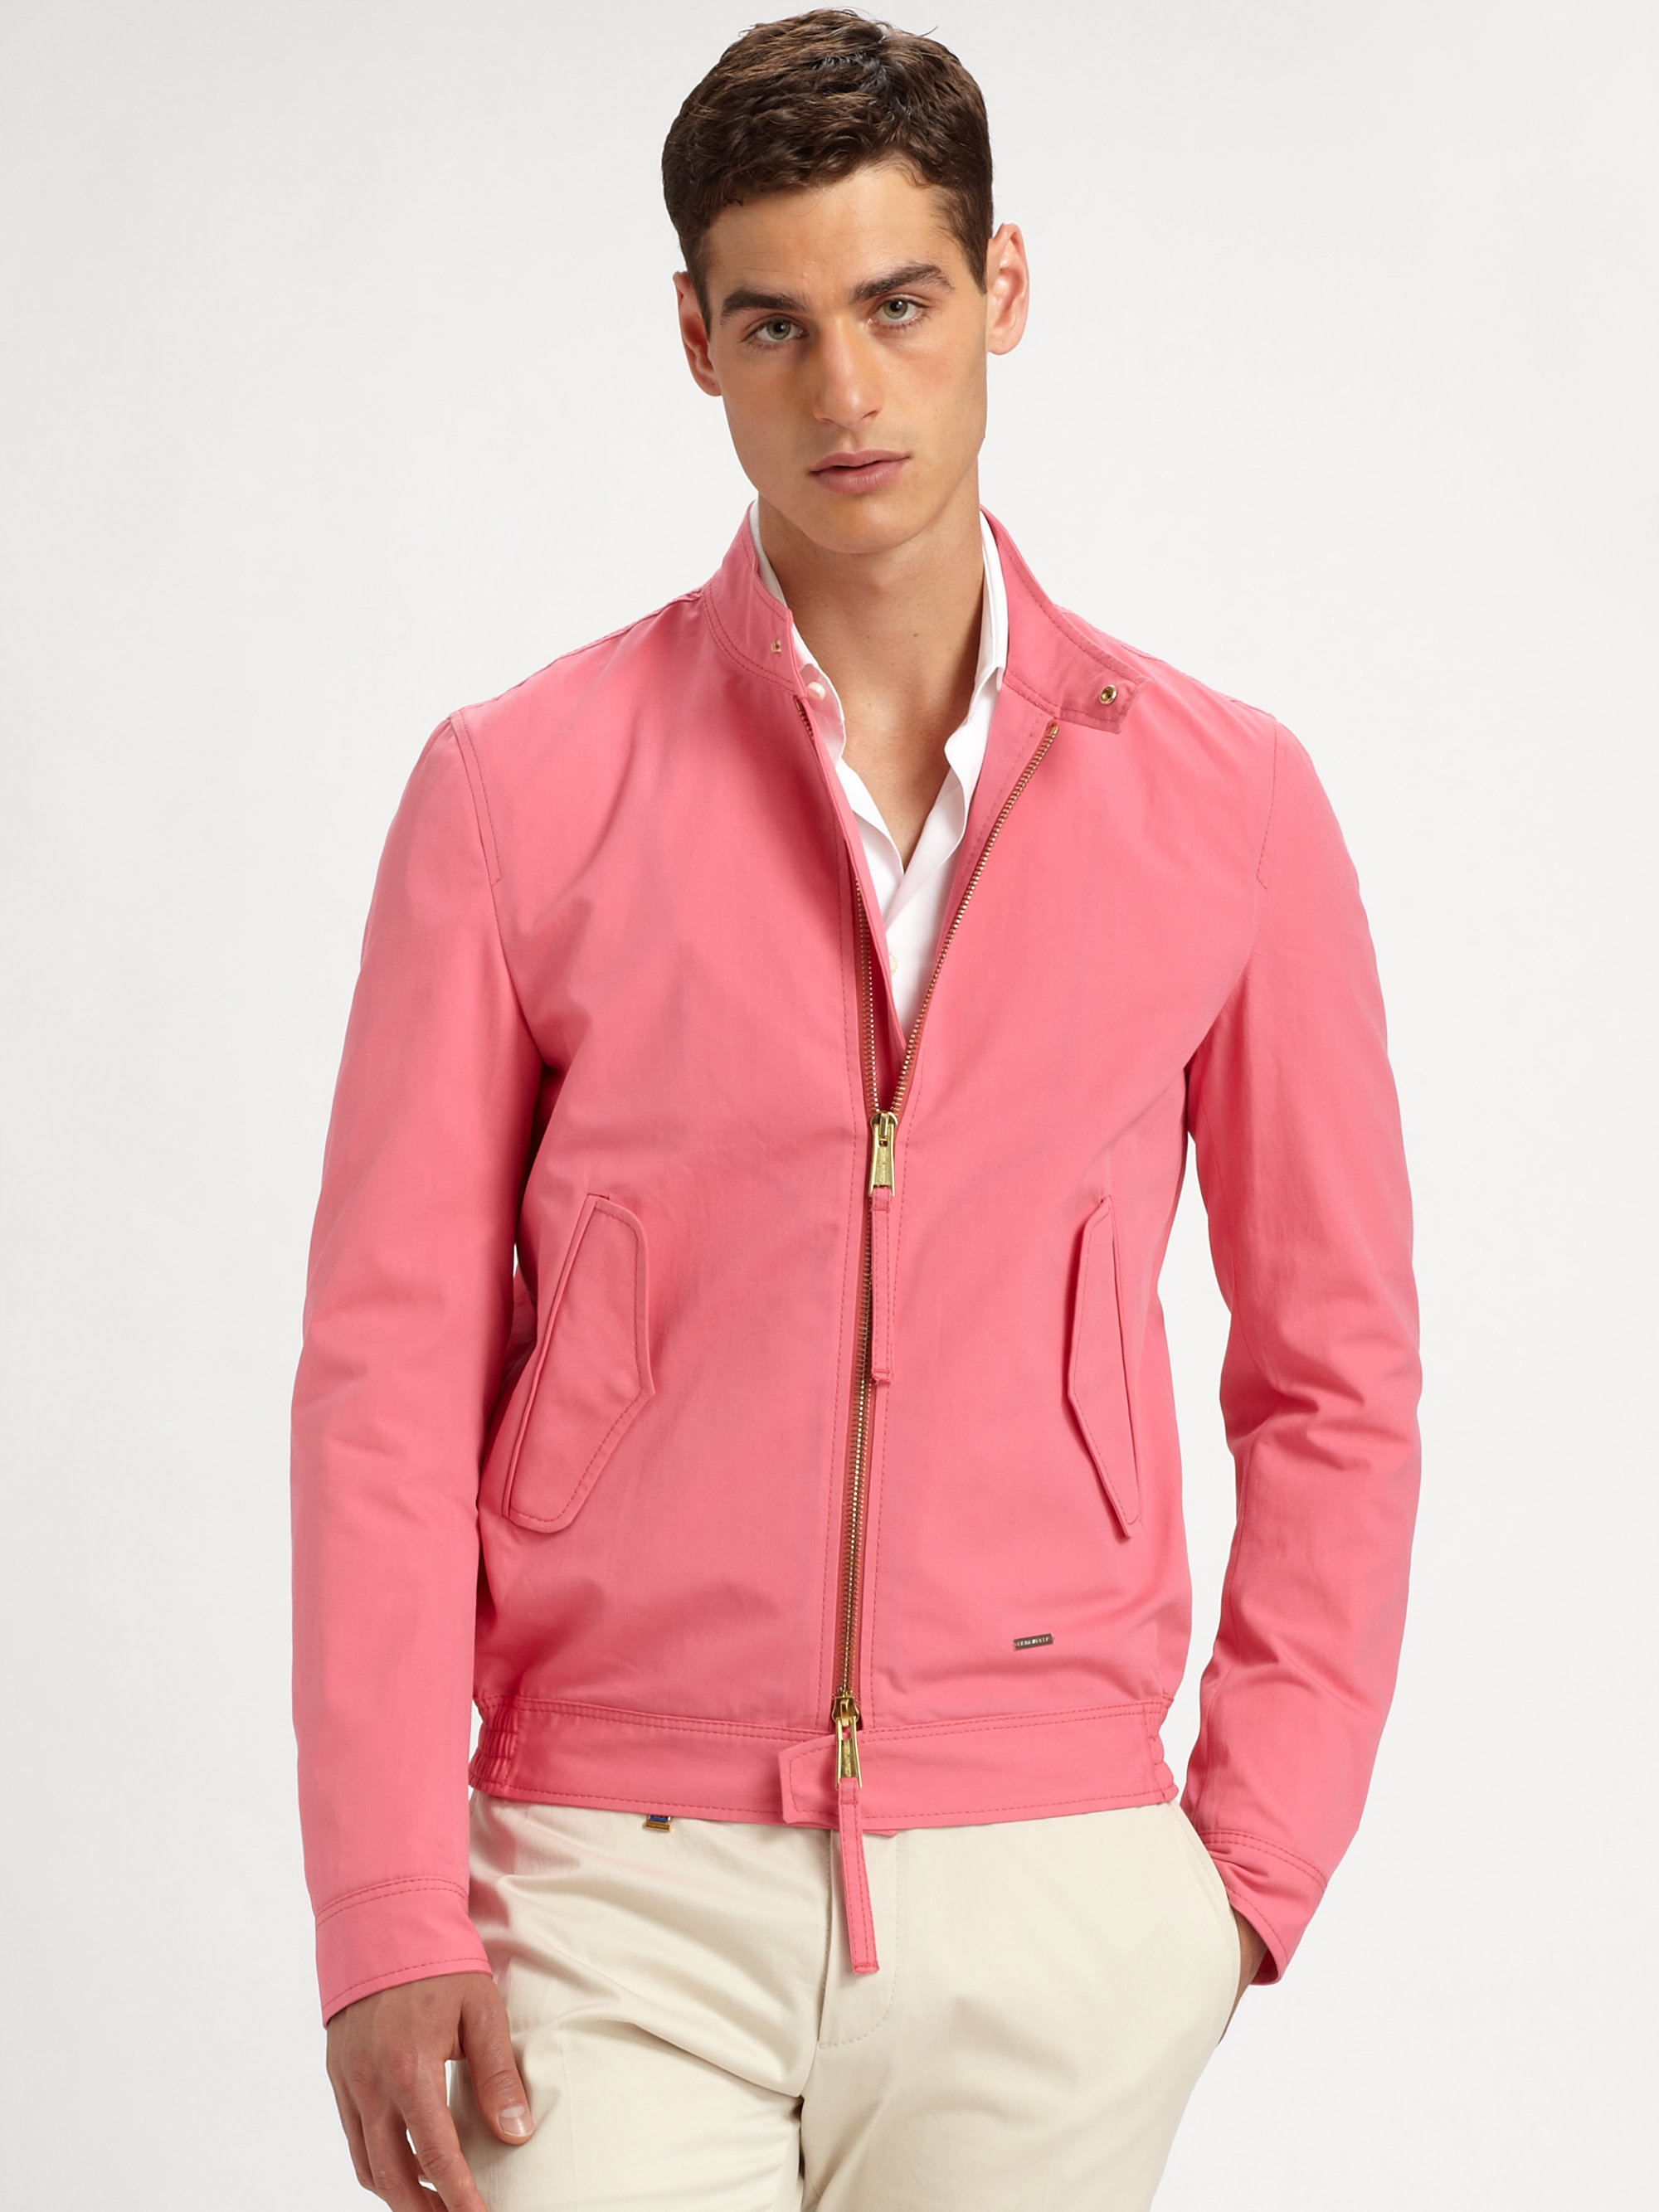 Images of Pink Jacket Mens - The Fashions Of Paradise